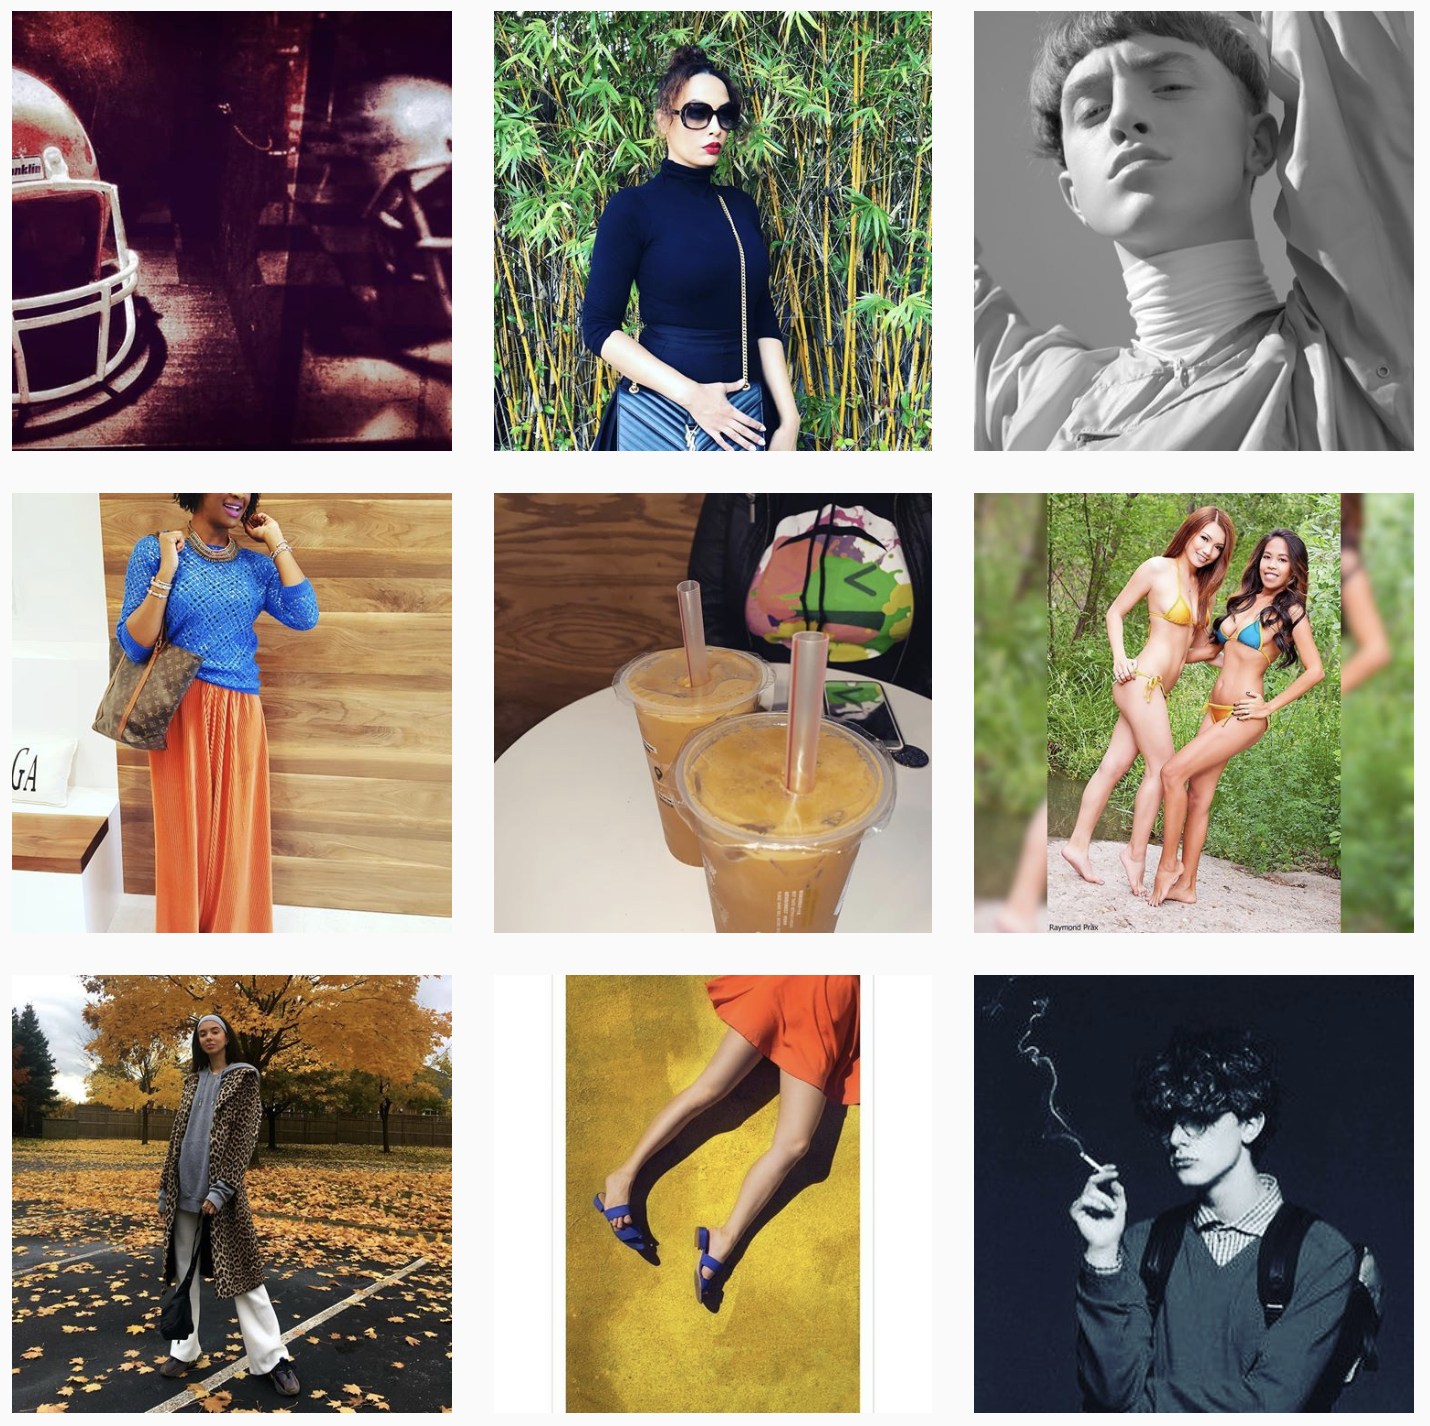 American Apparel 1 - Instagram collection